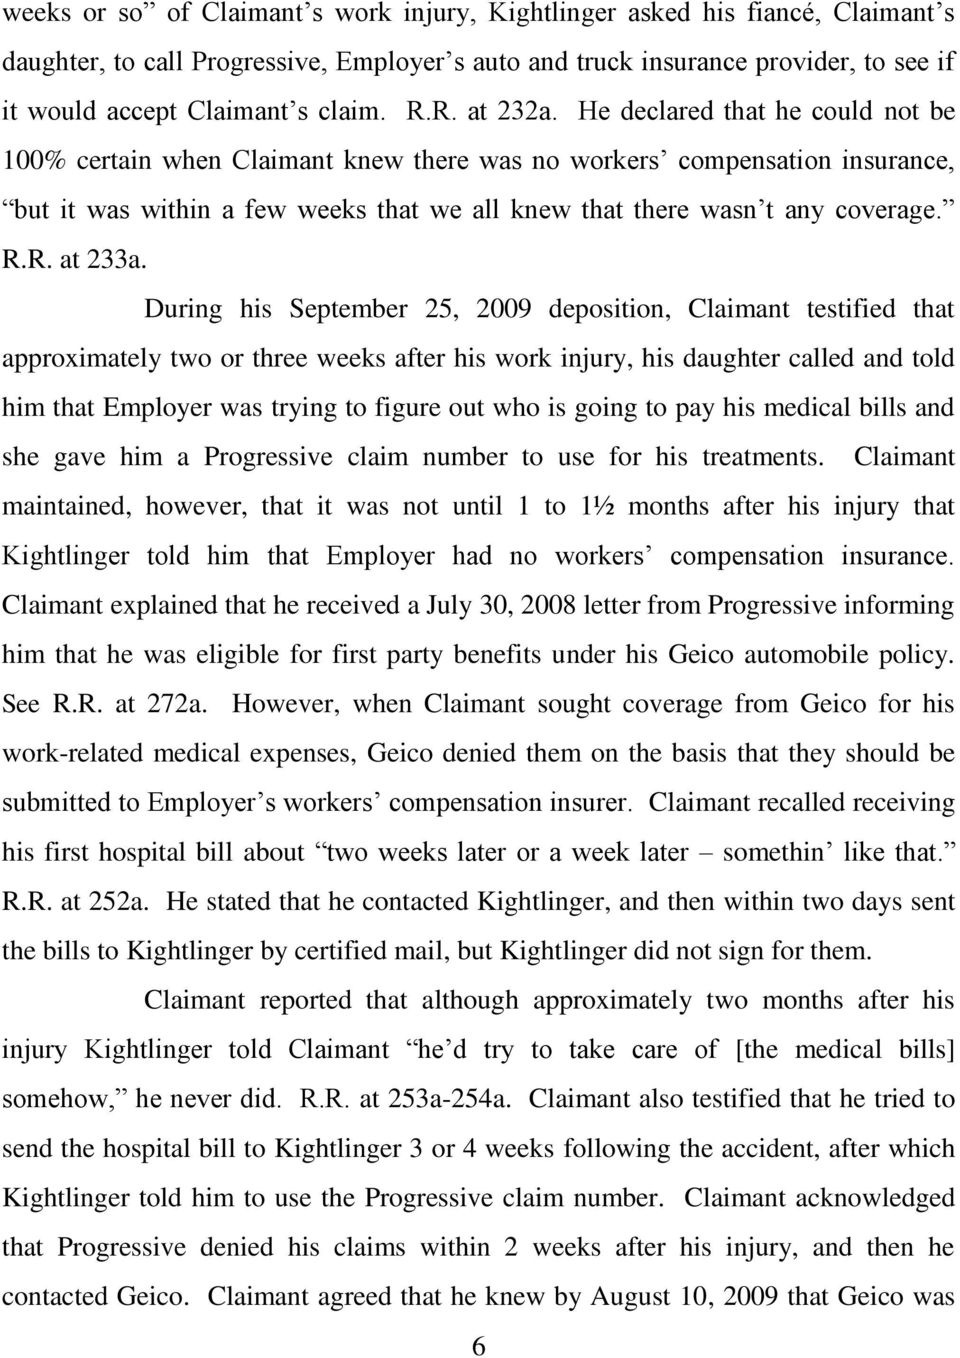 He declared that he could not be 100% certain when Claimant knew there was no workers compensation insurance, but it was within a few weeks that we all knew that there wasn t any coverage. R.R. at 233a.